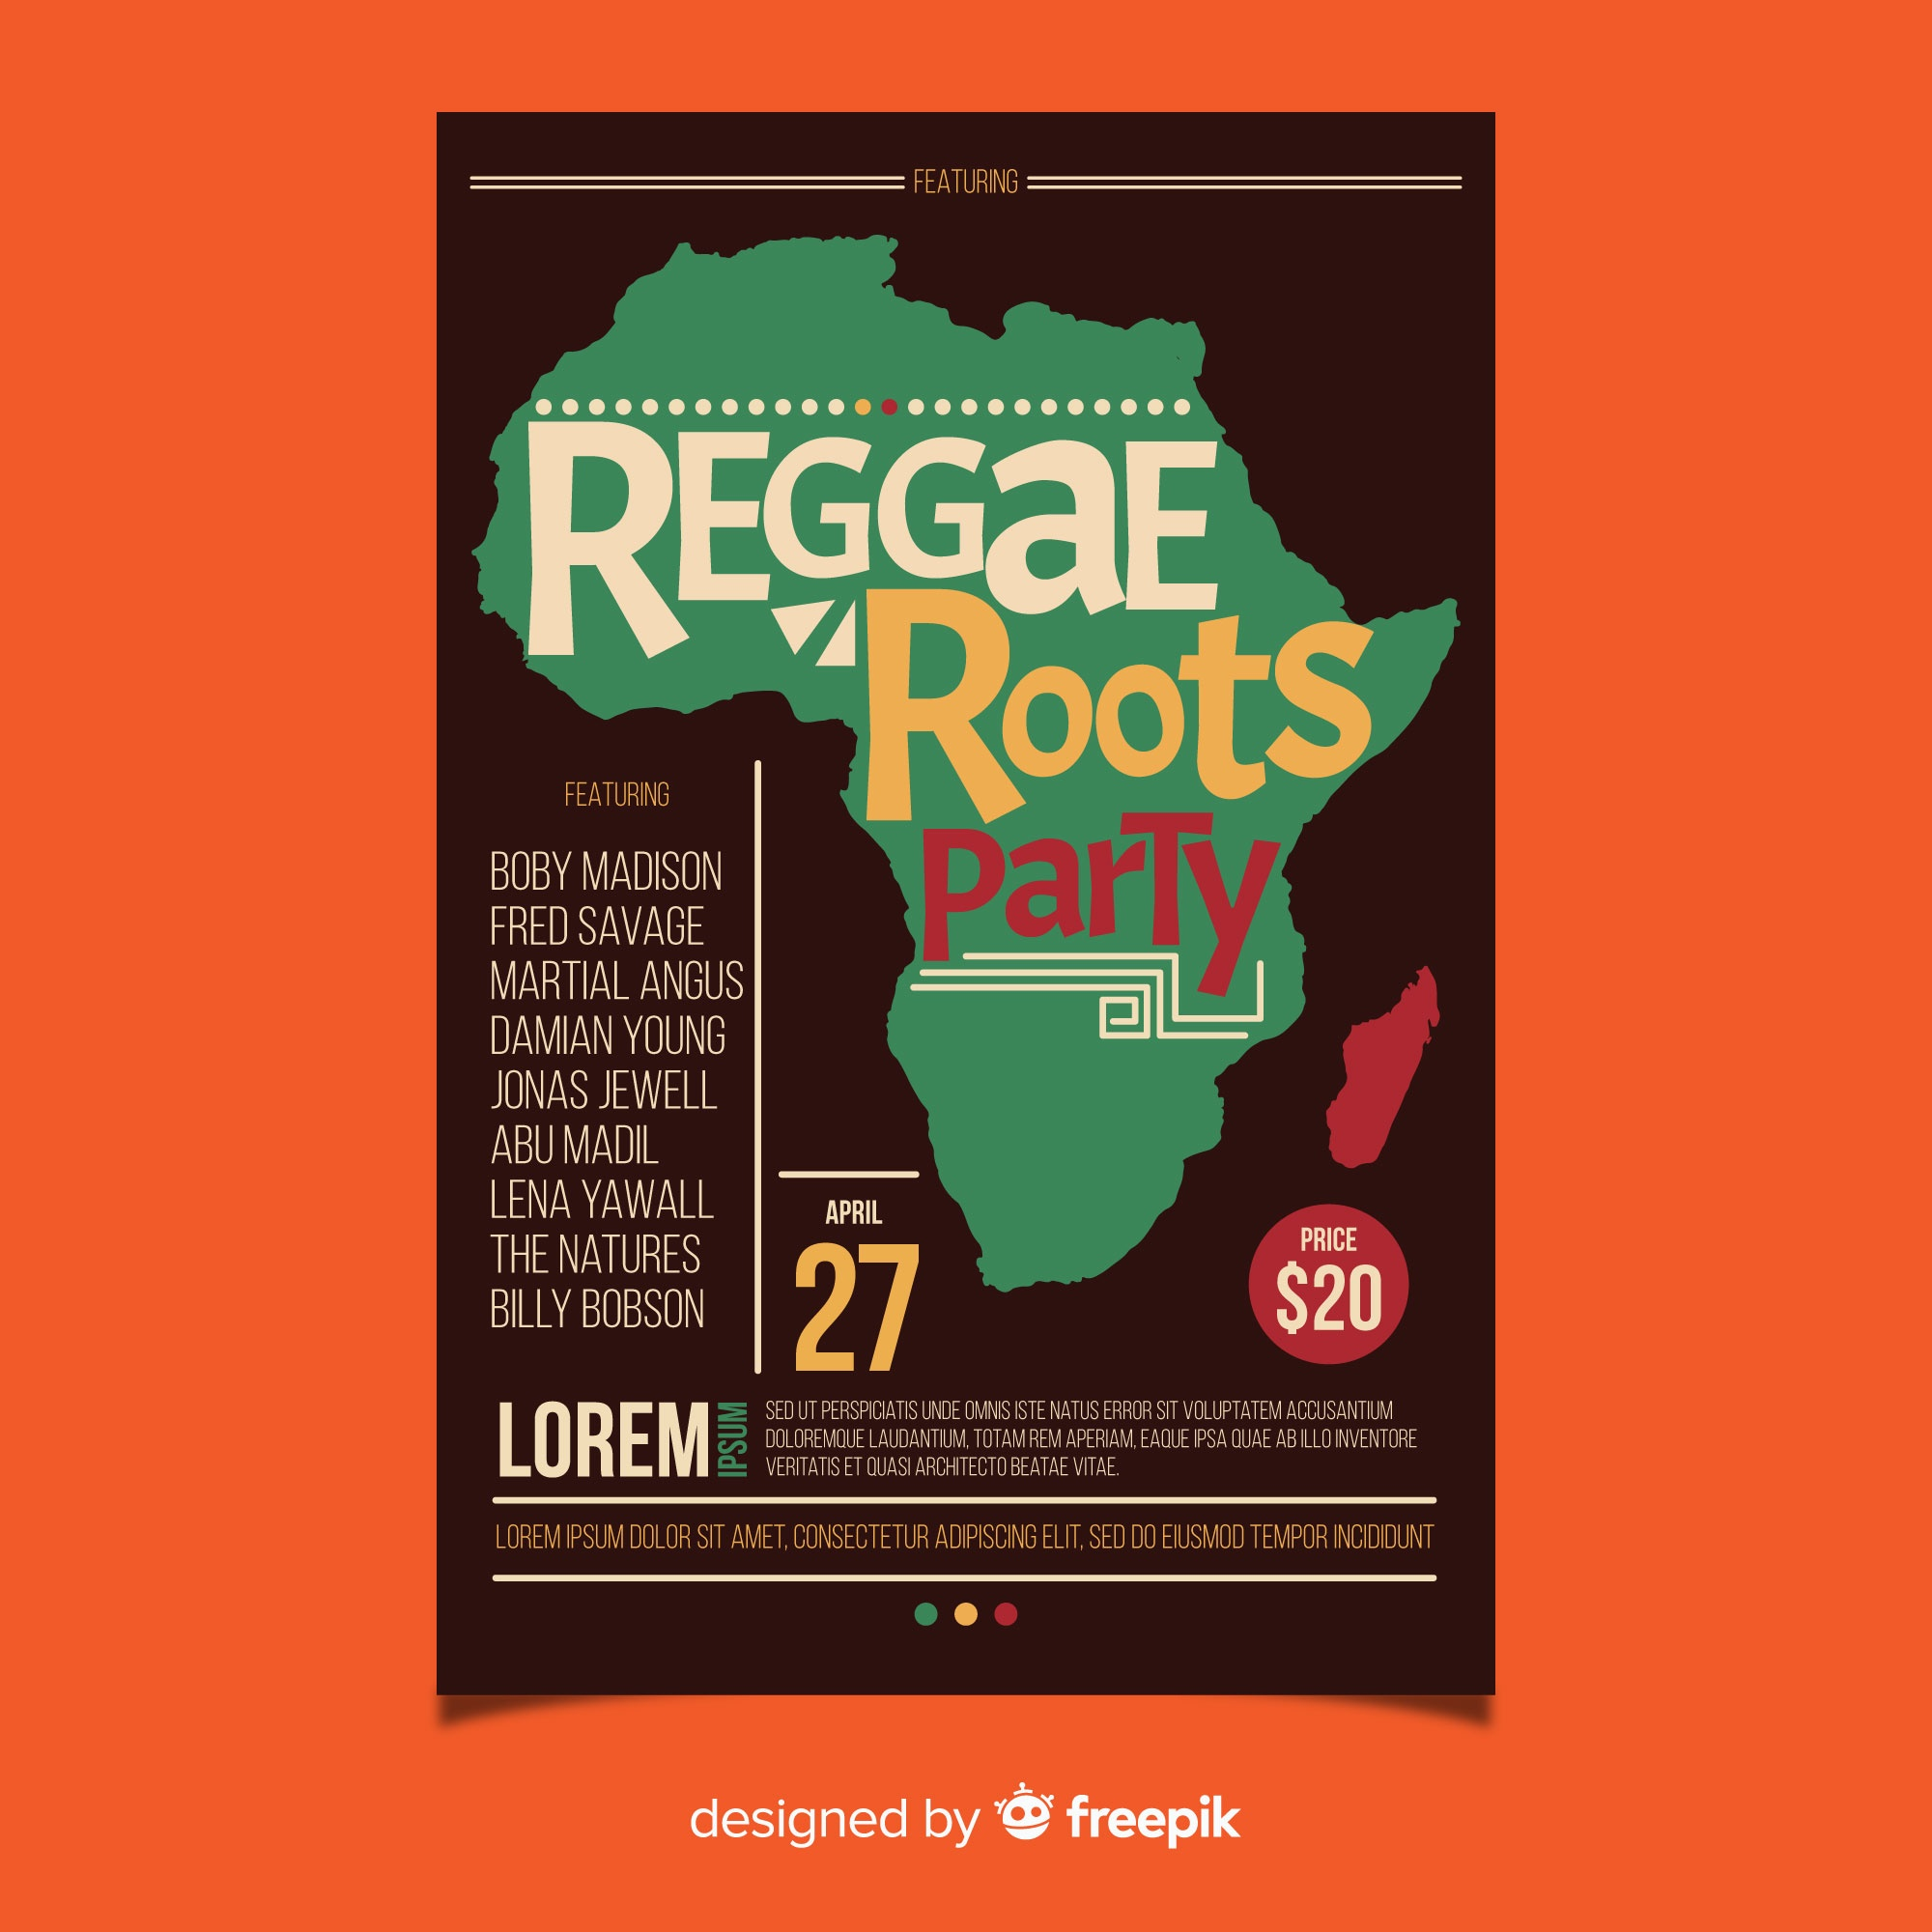 Reggae roots party flyer